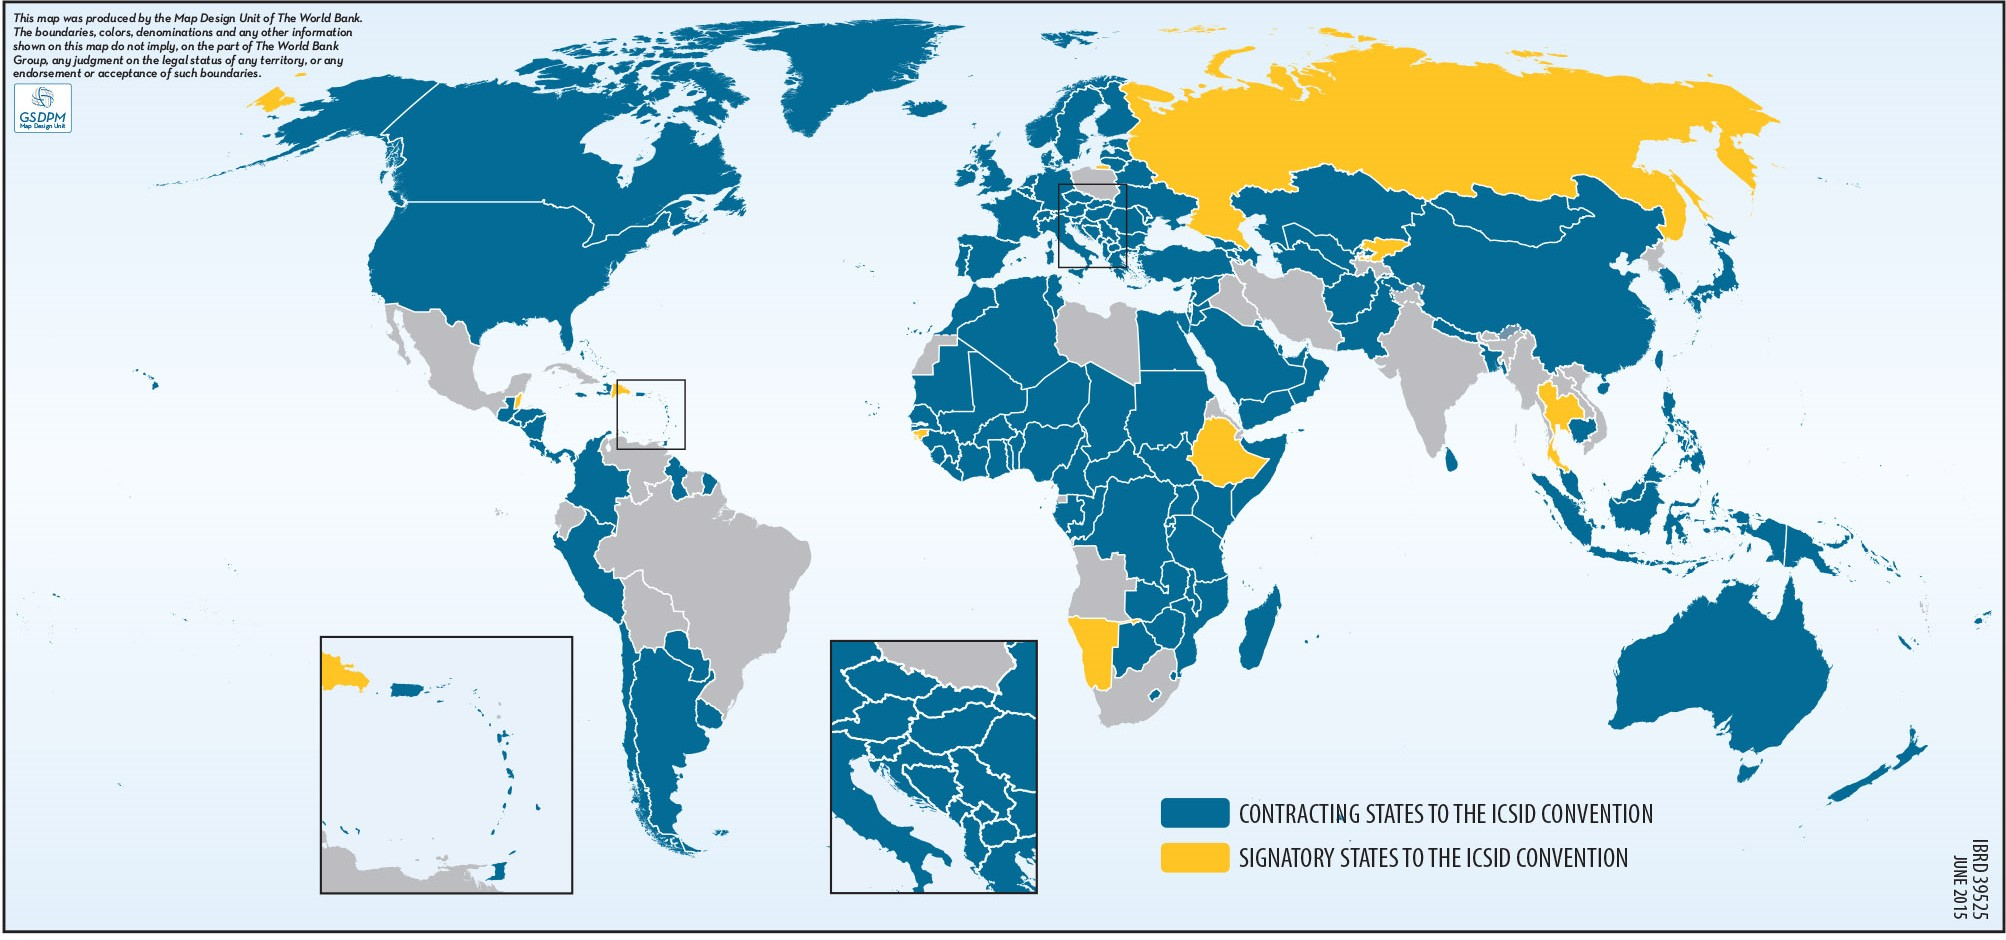 Investor-State Disputes: States that Have Ratified the ICSID Convention